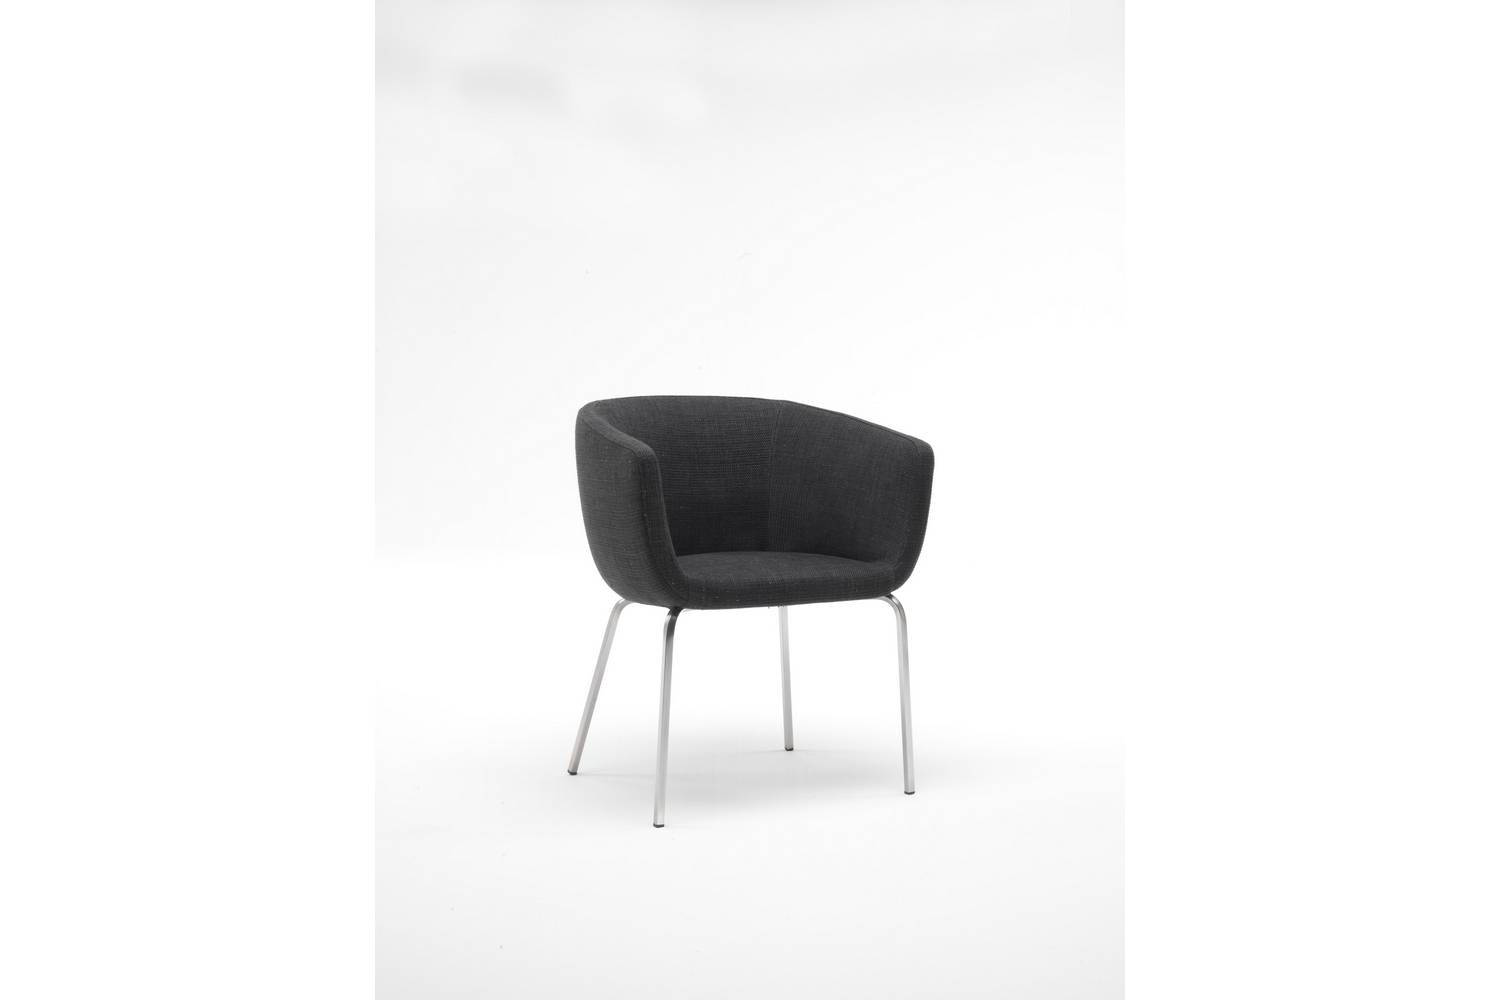 Nut Armchair by Piero Lissoni for Living Divani